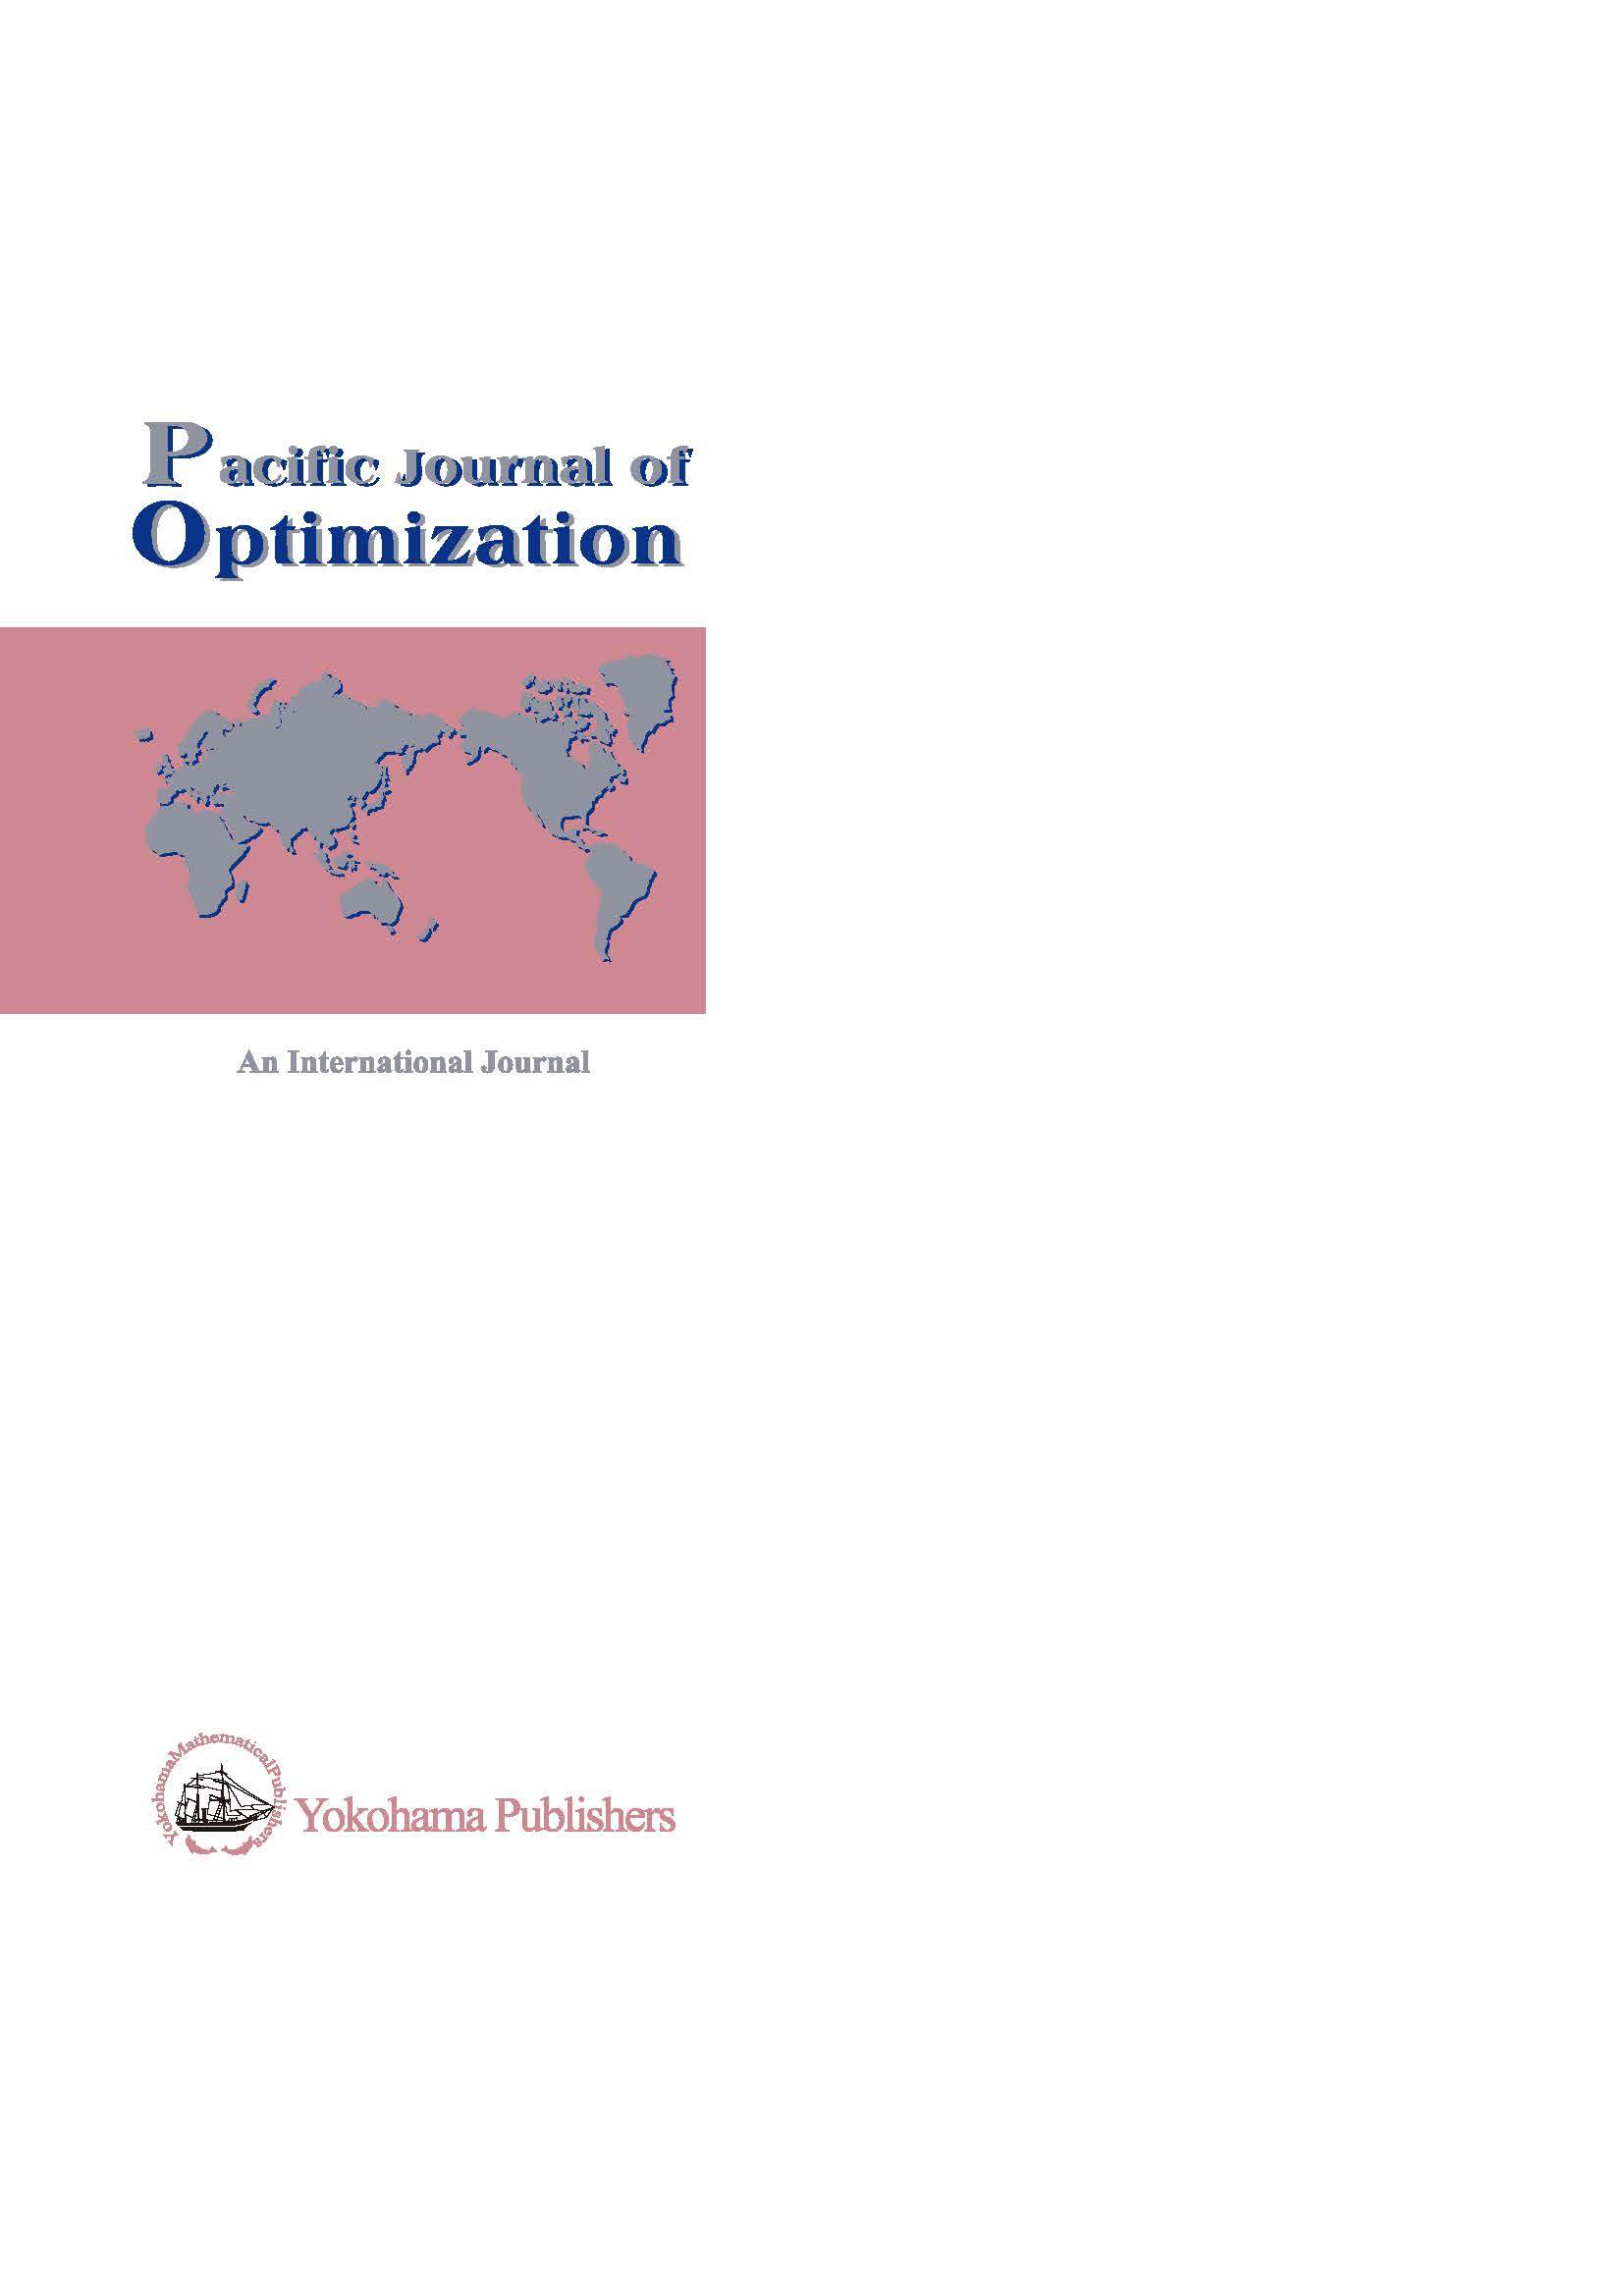 Pacific Journal of Optimization